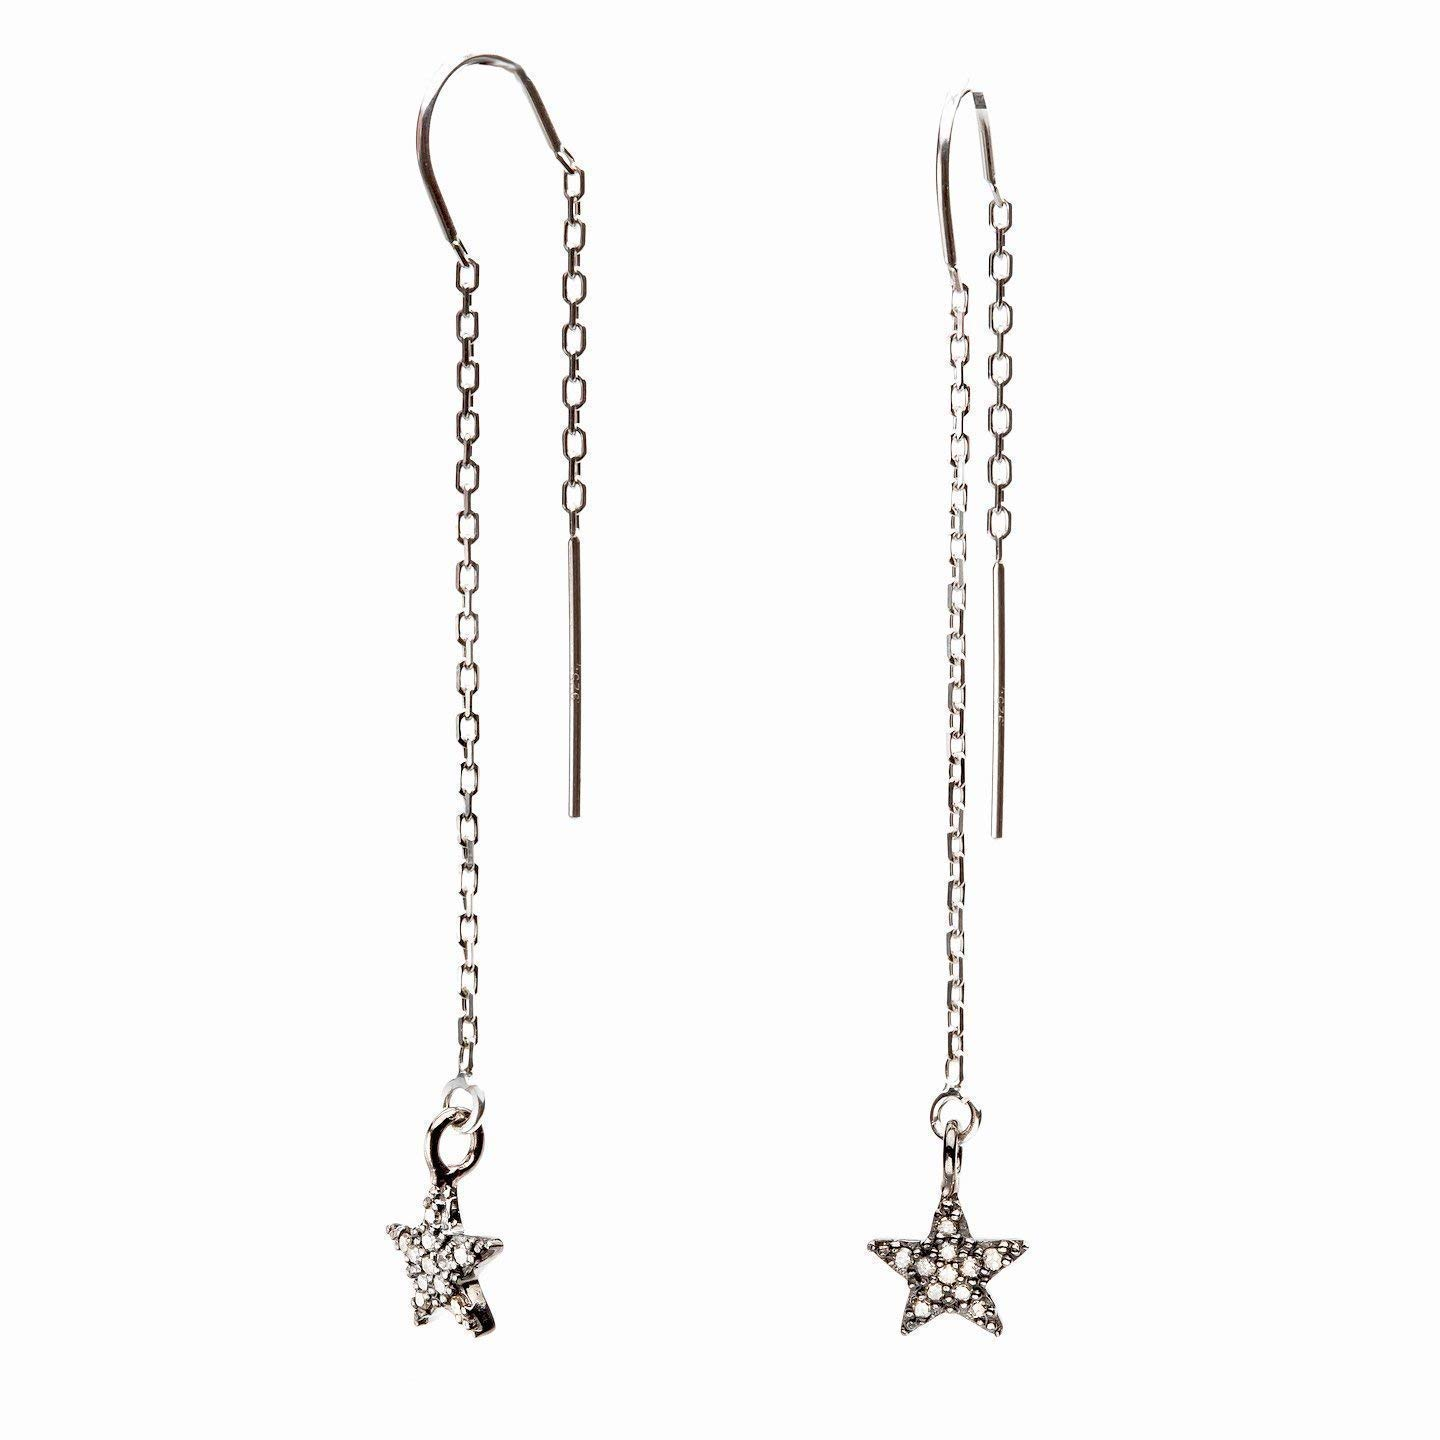 Genuine Real Pave Diamond Star Threader Earrings Sterling Silver Jewelry Gift for Women